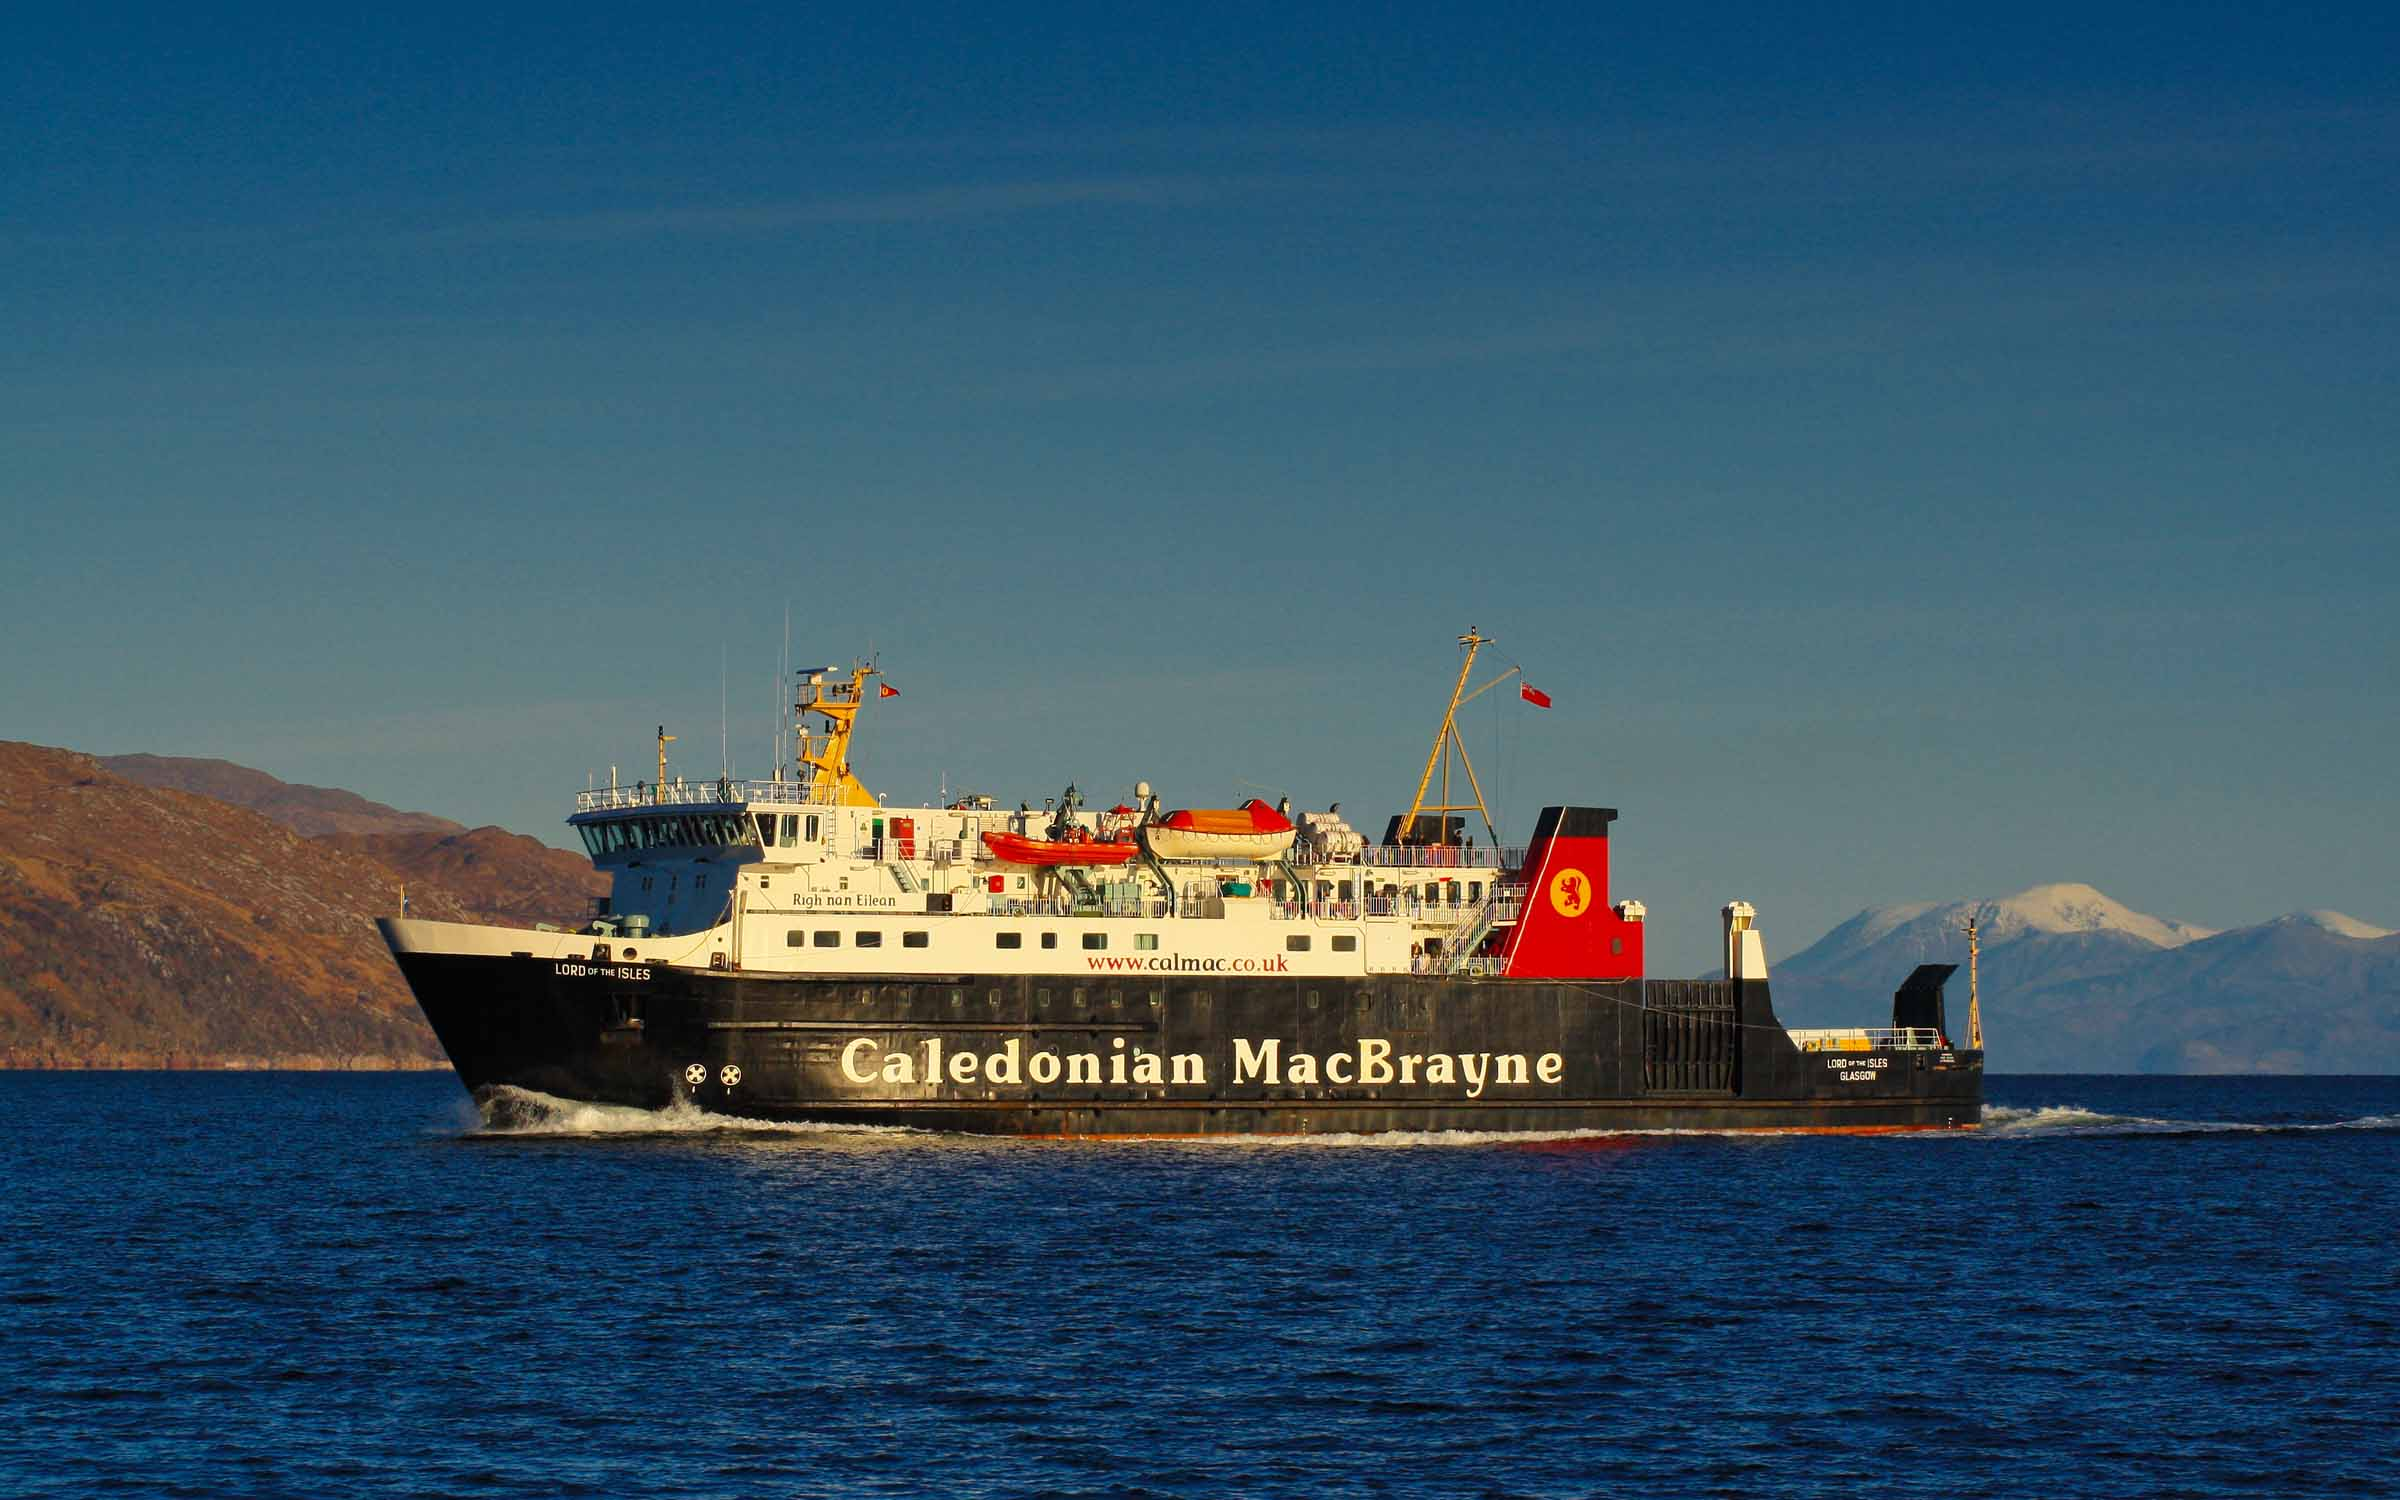 Lord of the Isles approaching Craignure Bay (Ships of CalMac)